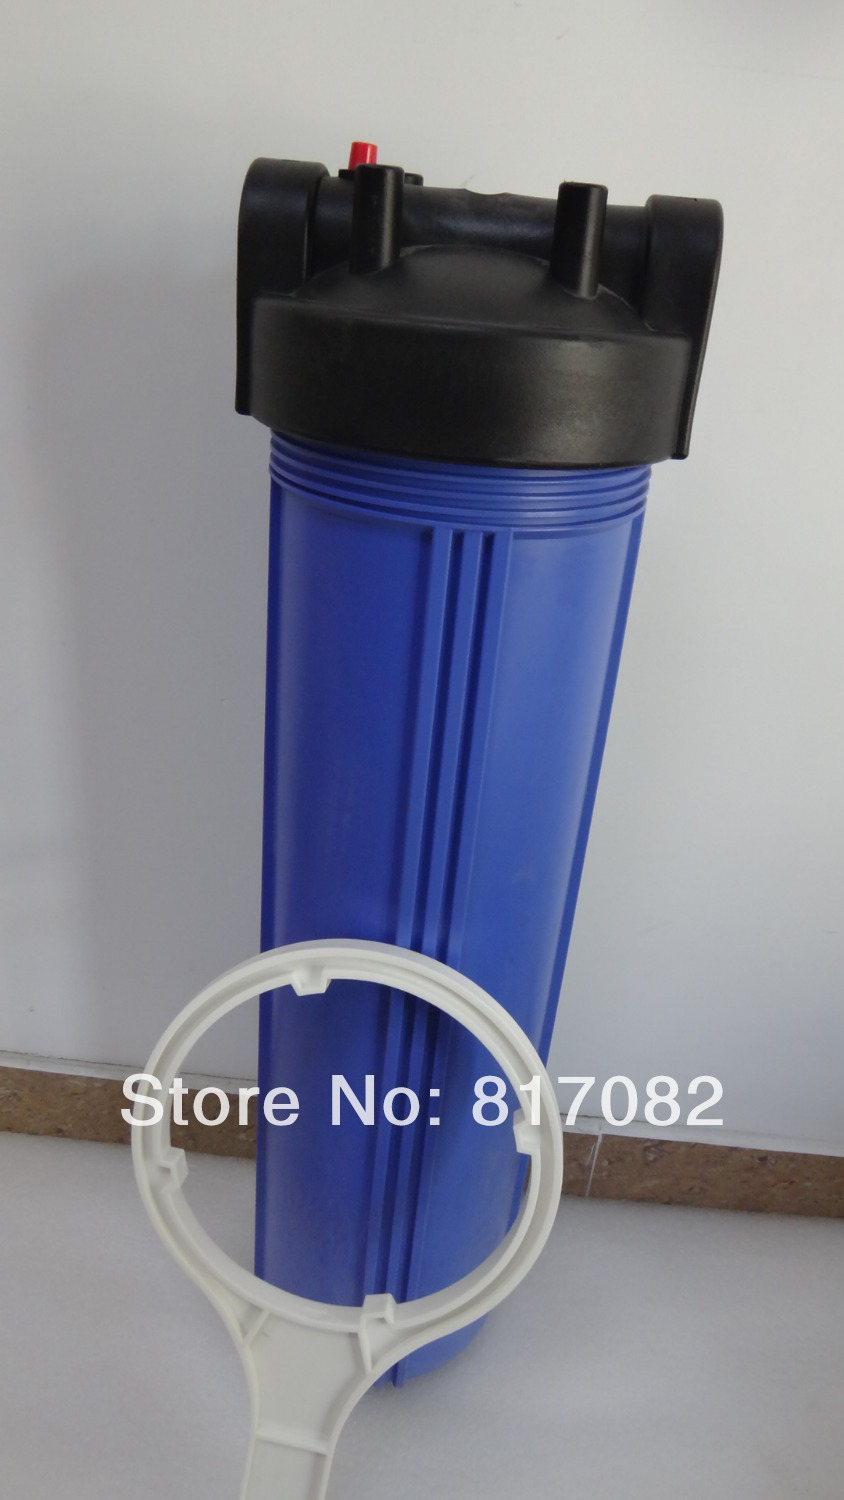 20 Big Blue Standard Water Filter Housing for Water Purifier free shipping